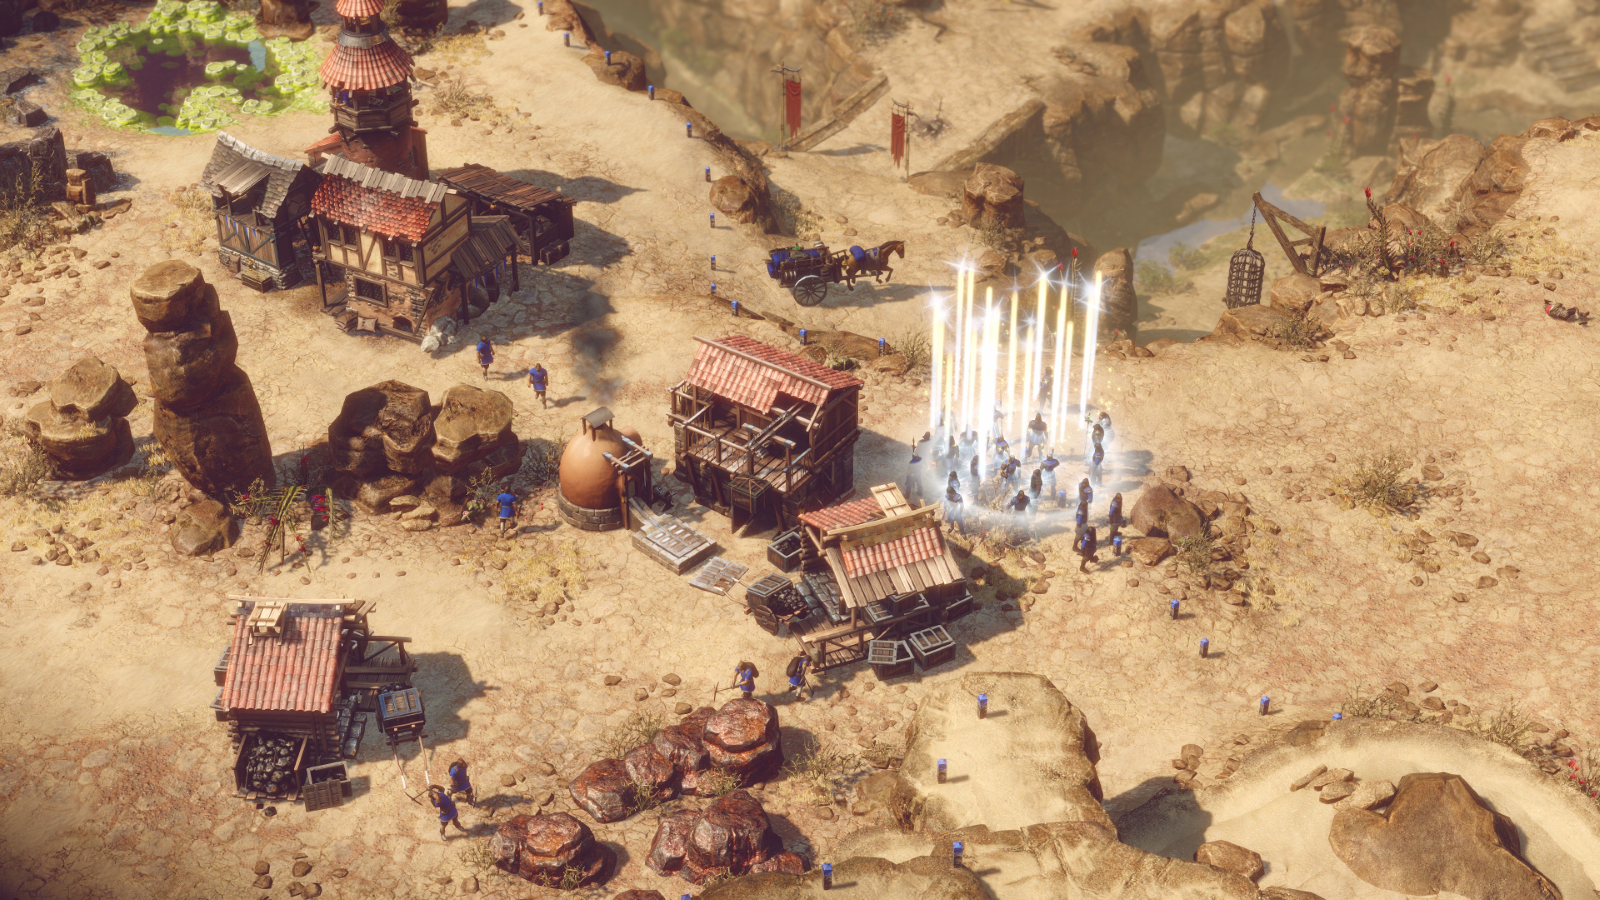 Spellforce 3 Details Hybrid RPG-RTS Gameplay